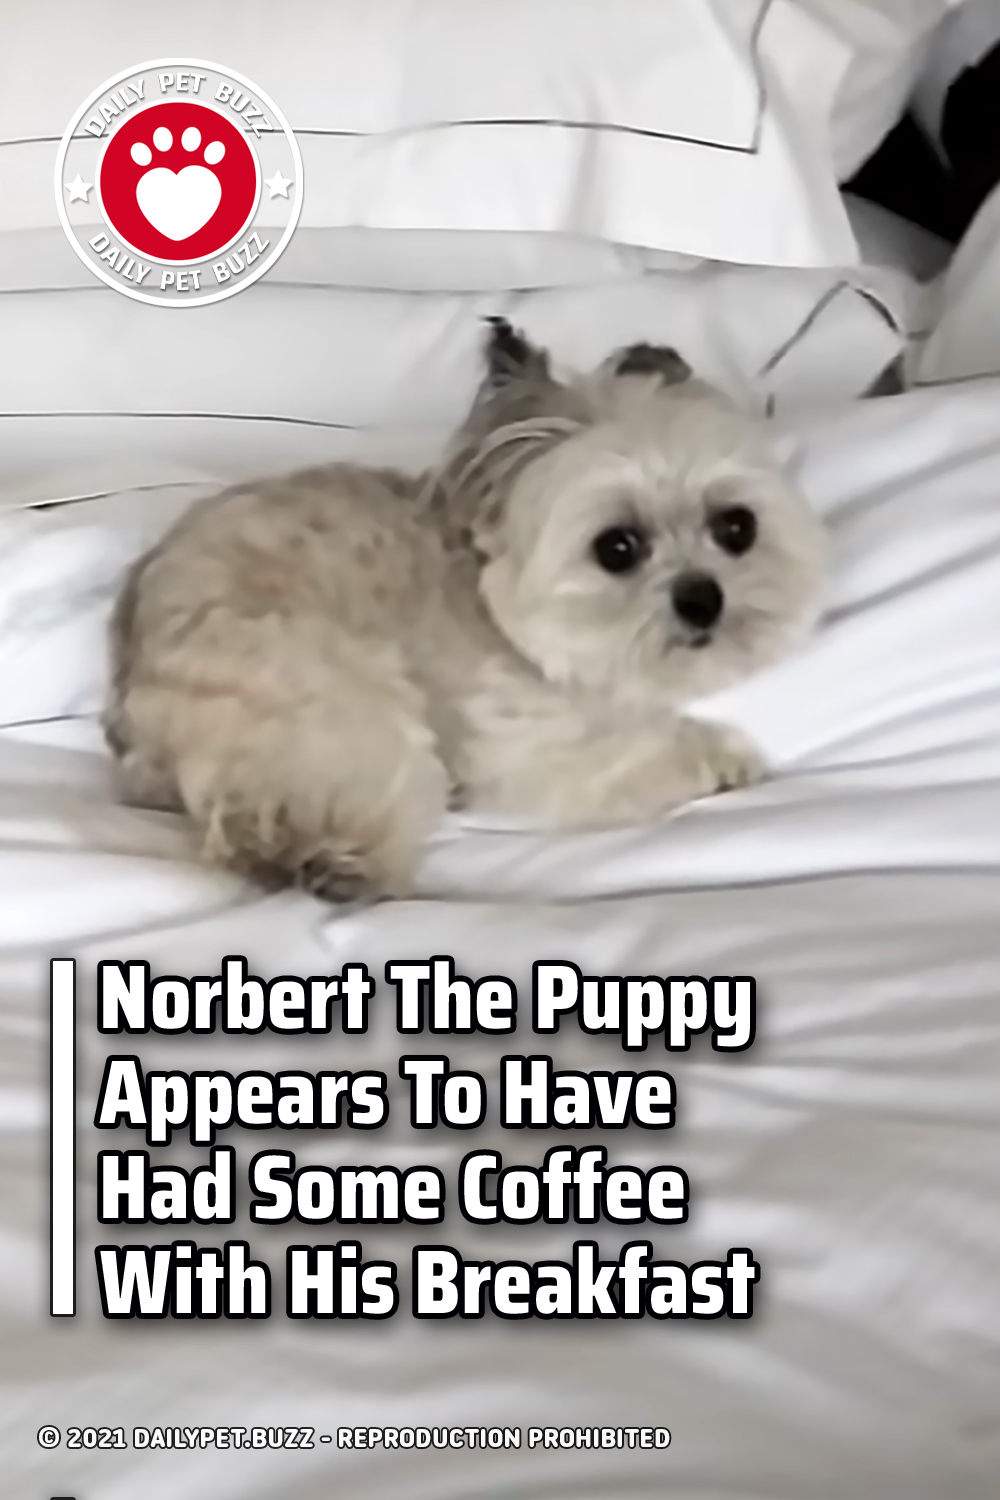 Norbert The Puppy Appears To Have Had Some Coffee With His Breakfast